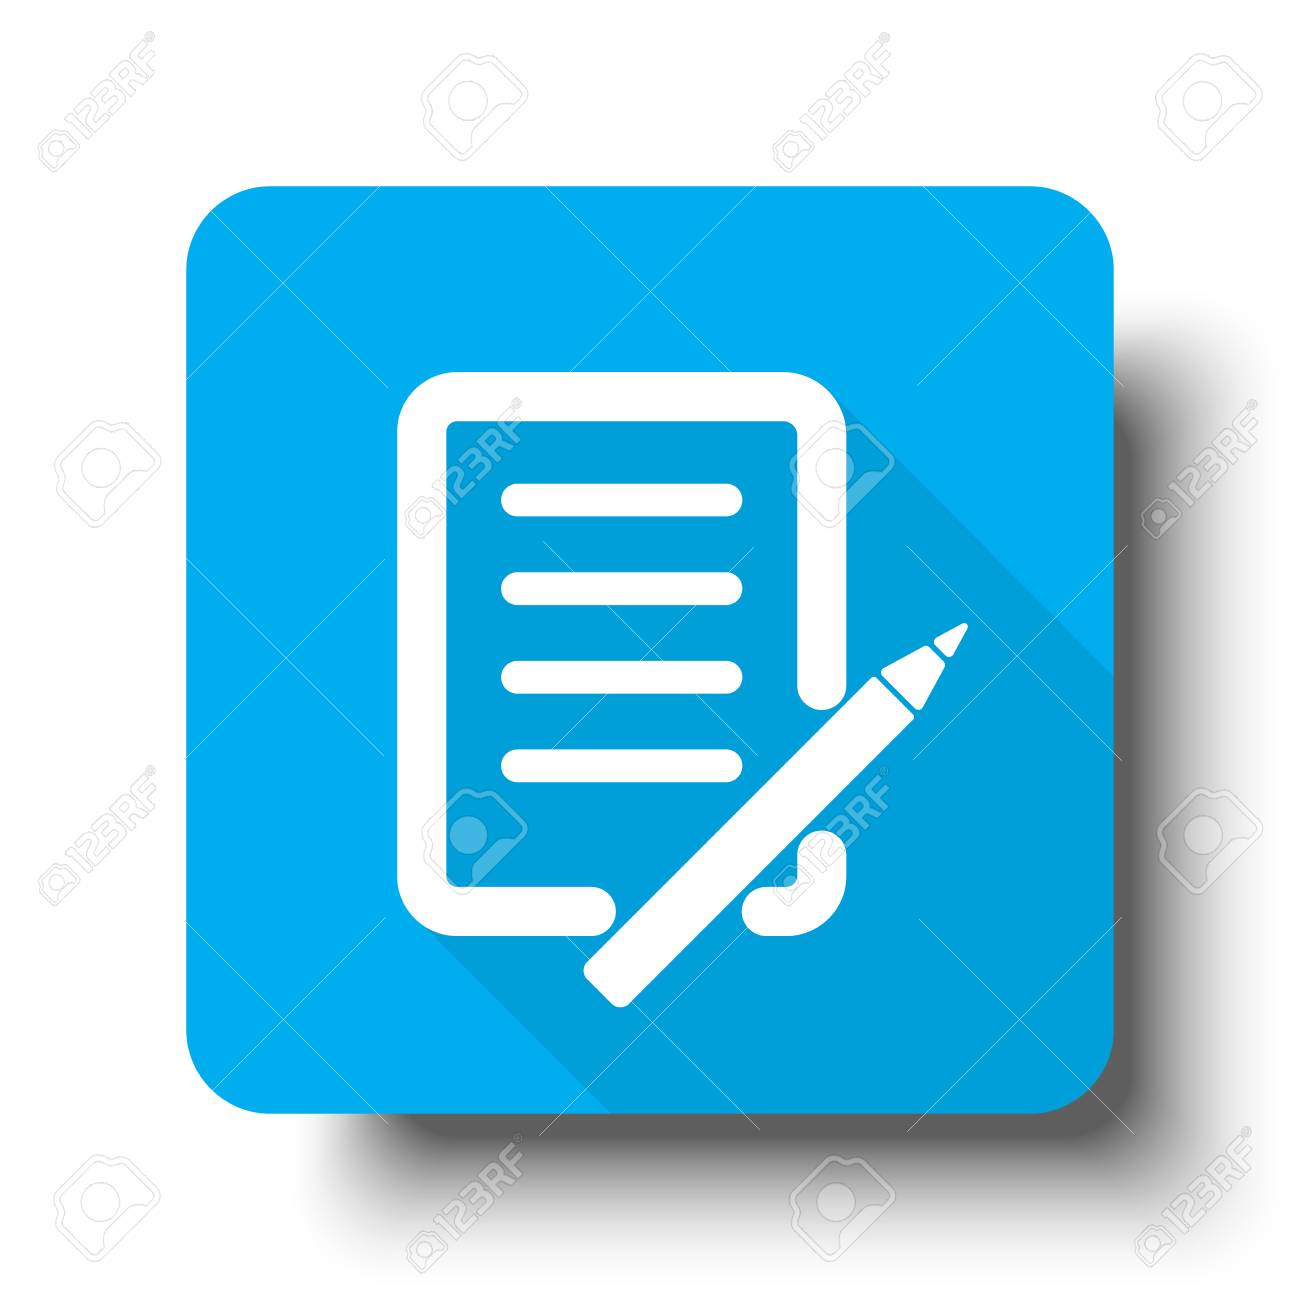 white pen and paper icon on blue web button royalty free cliparts